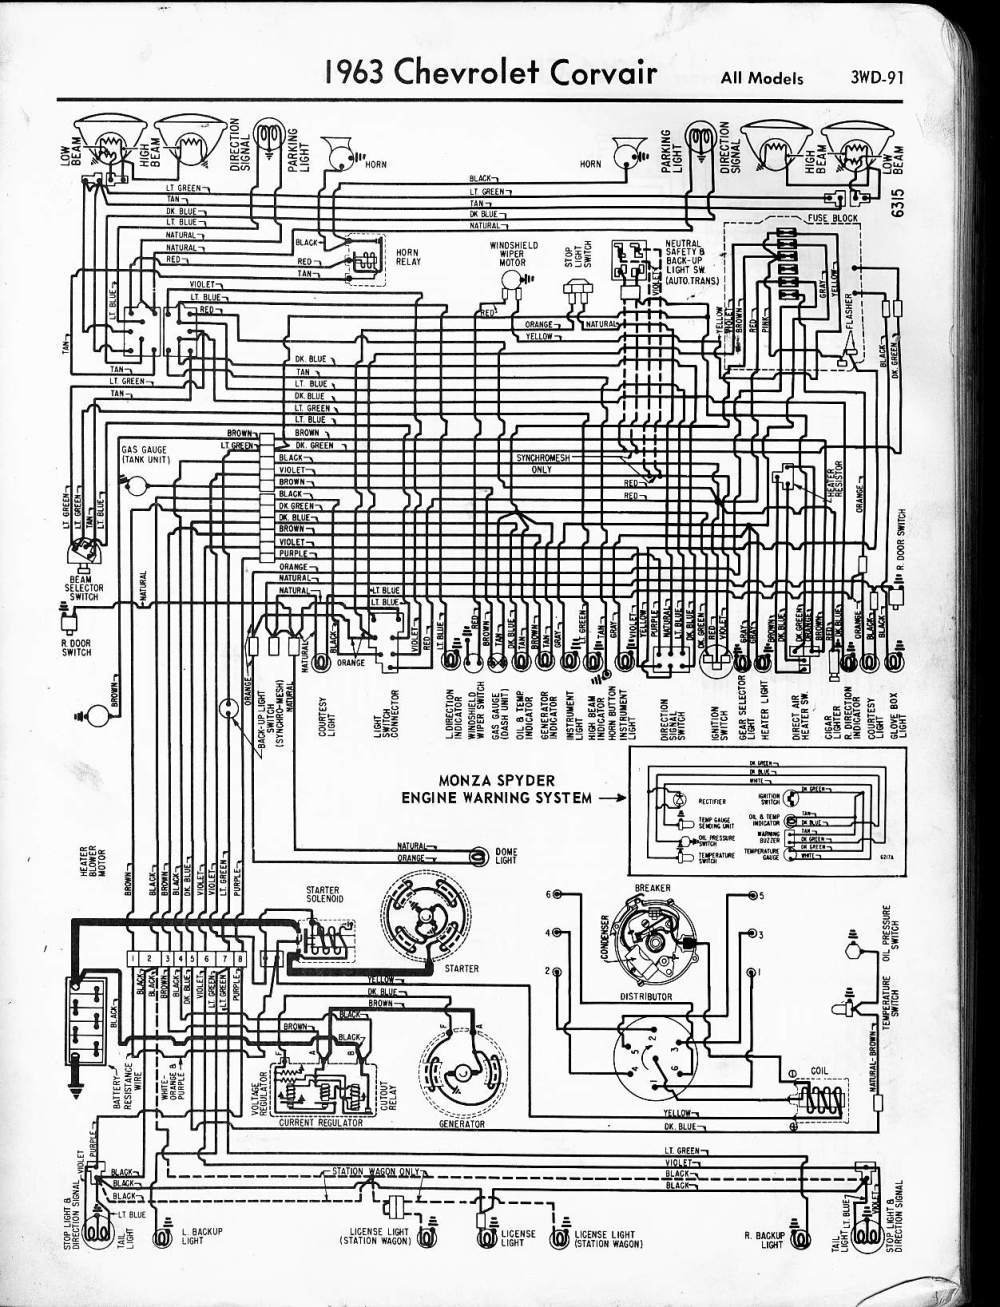 medium resolution of v8 chevy engine starter wiring diagram 1974 wiring library1963 corvair 57 65 chevy wiring diagrams 1963